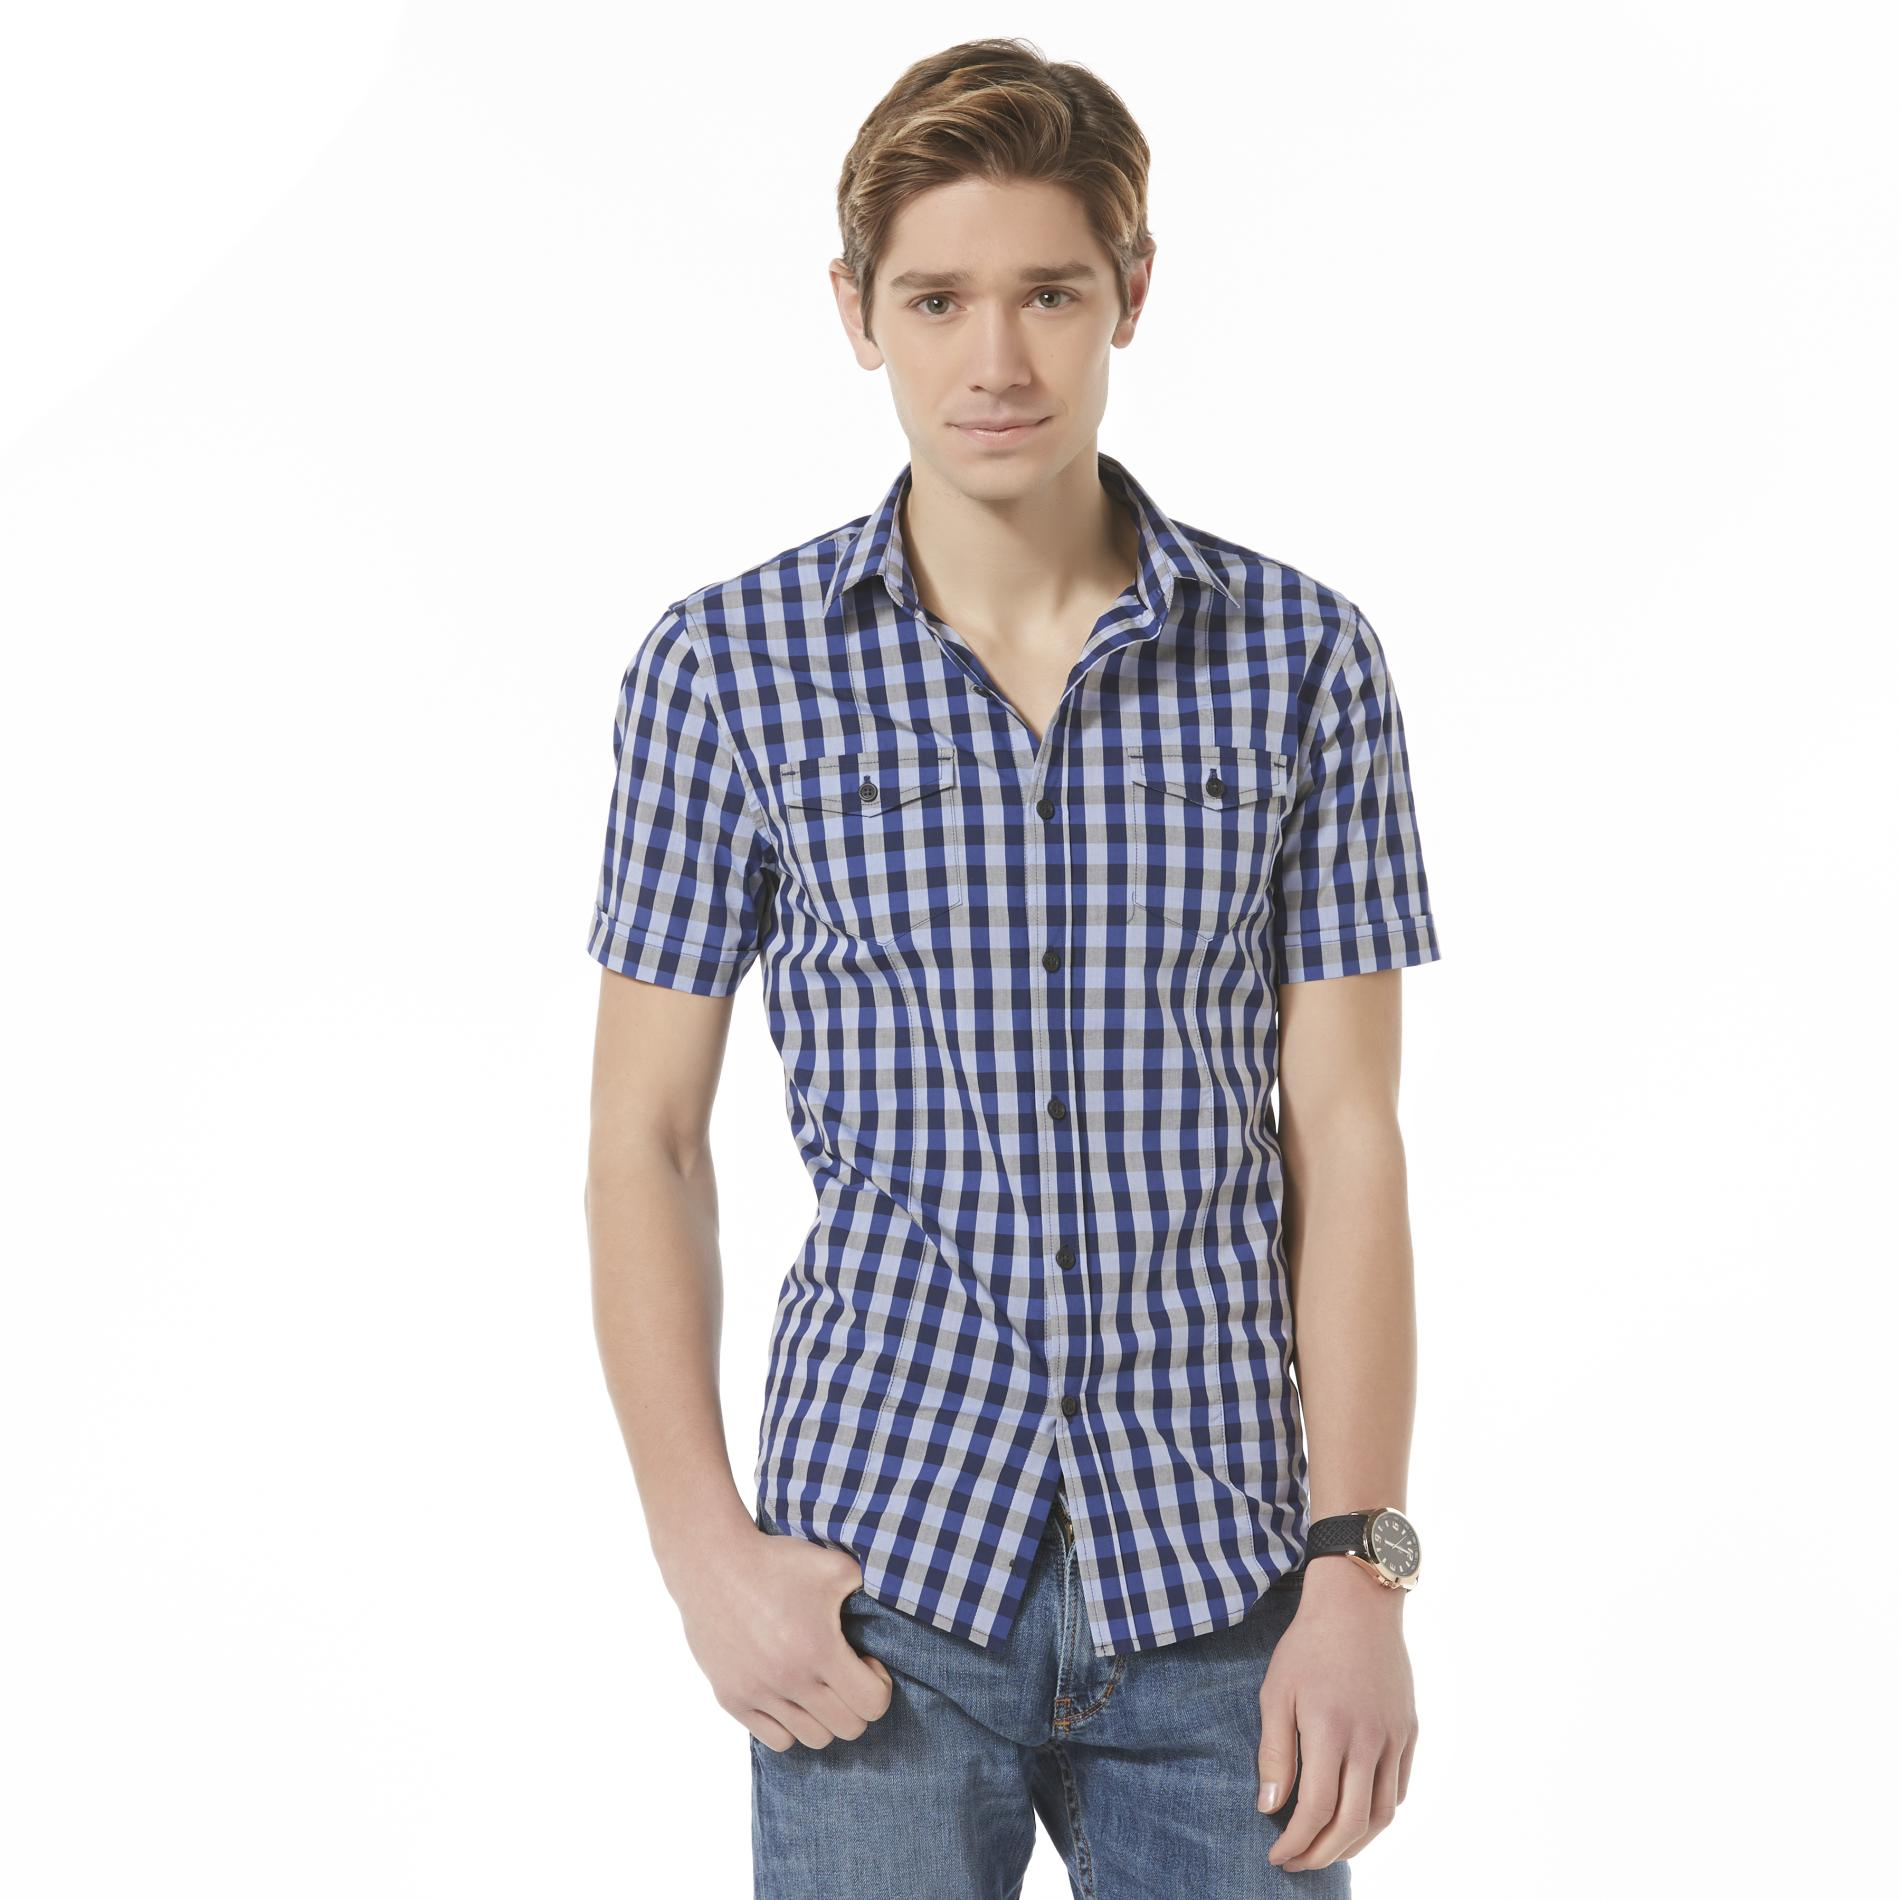 Structure Men's Short-Sleeve Casual Shirt - Gingham